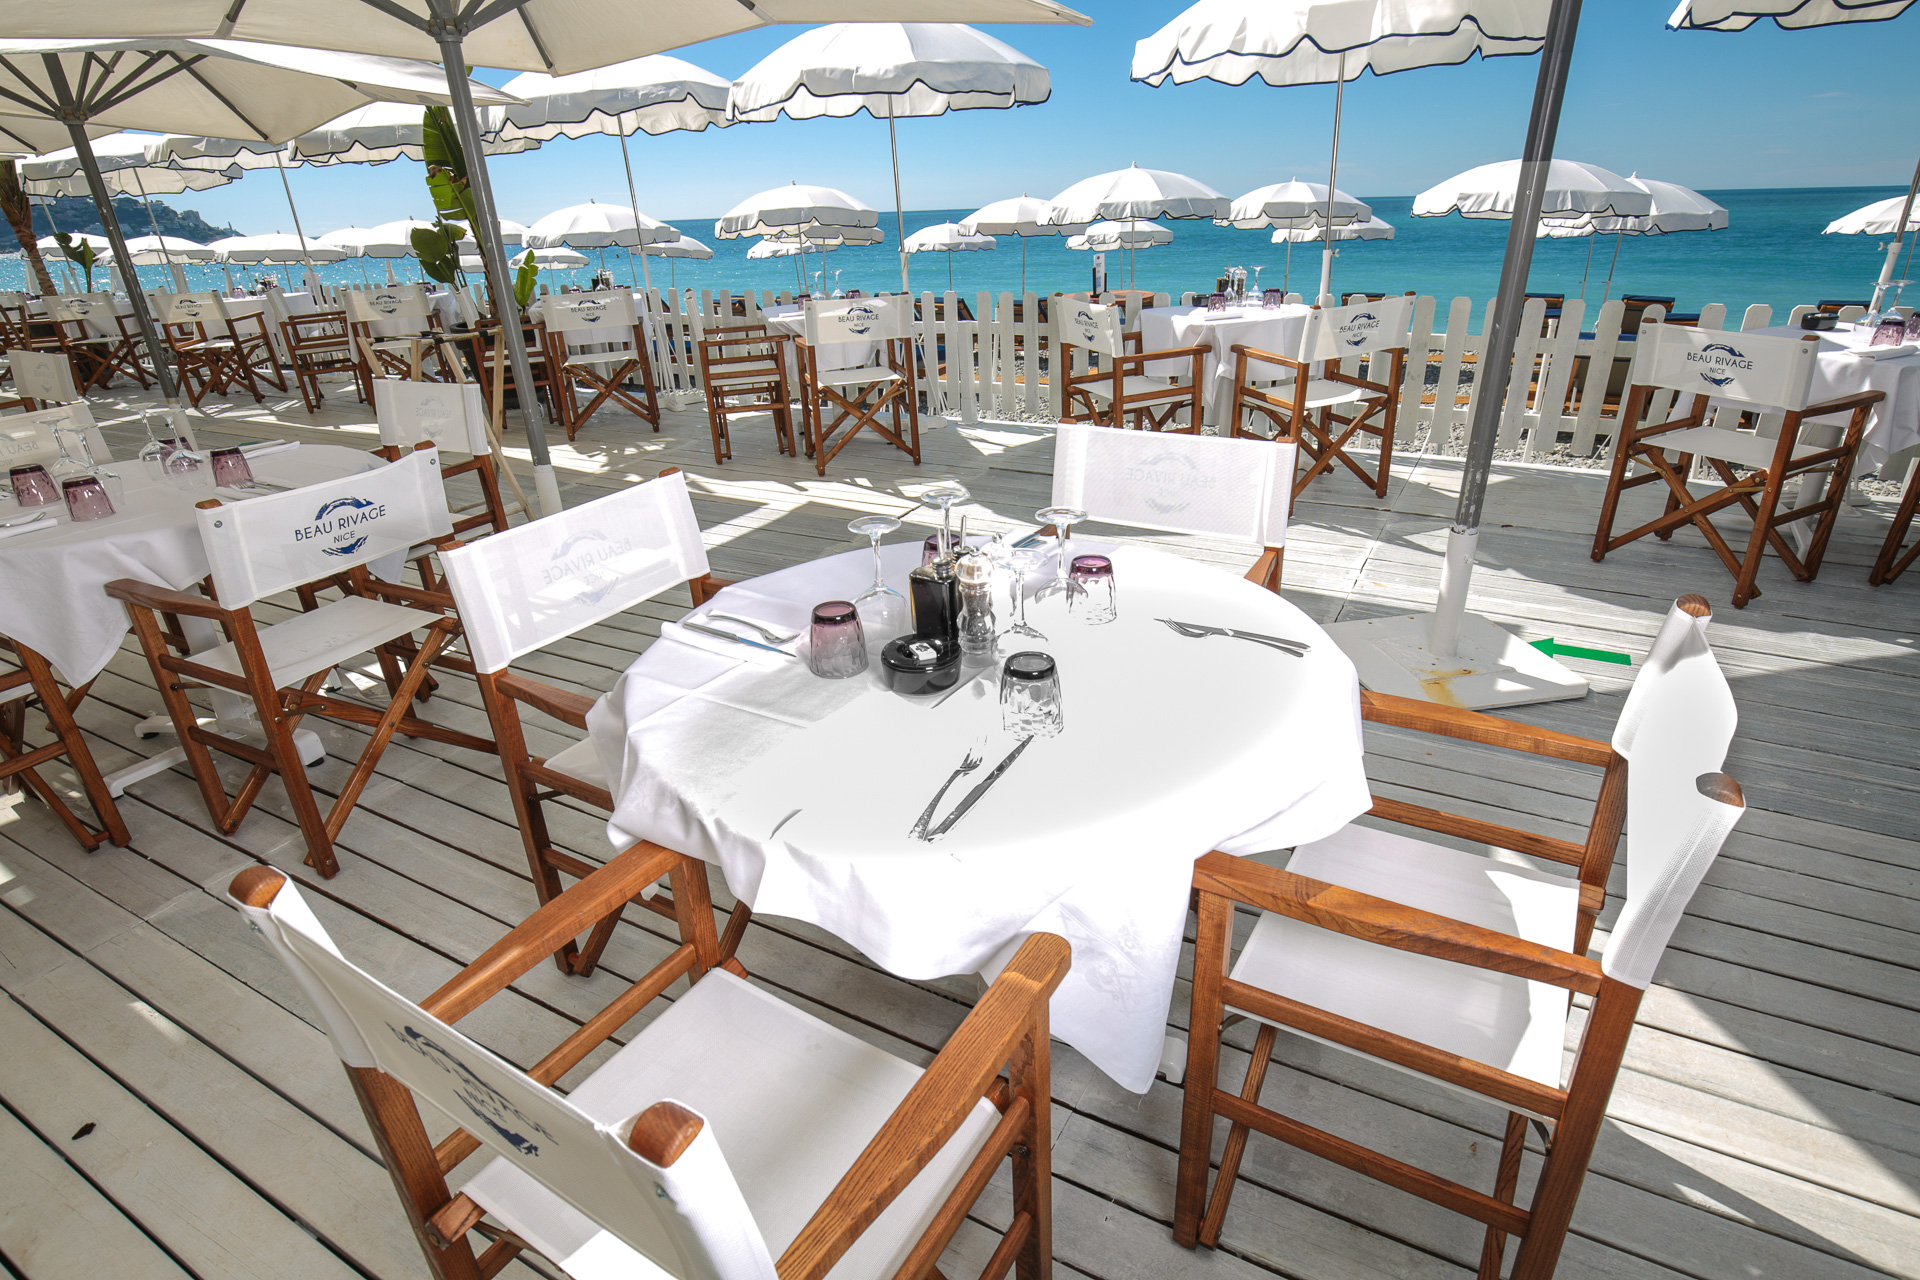 Table dressée au Restaurant de la Plage